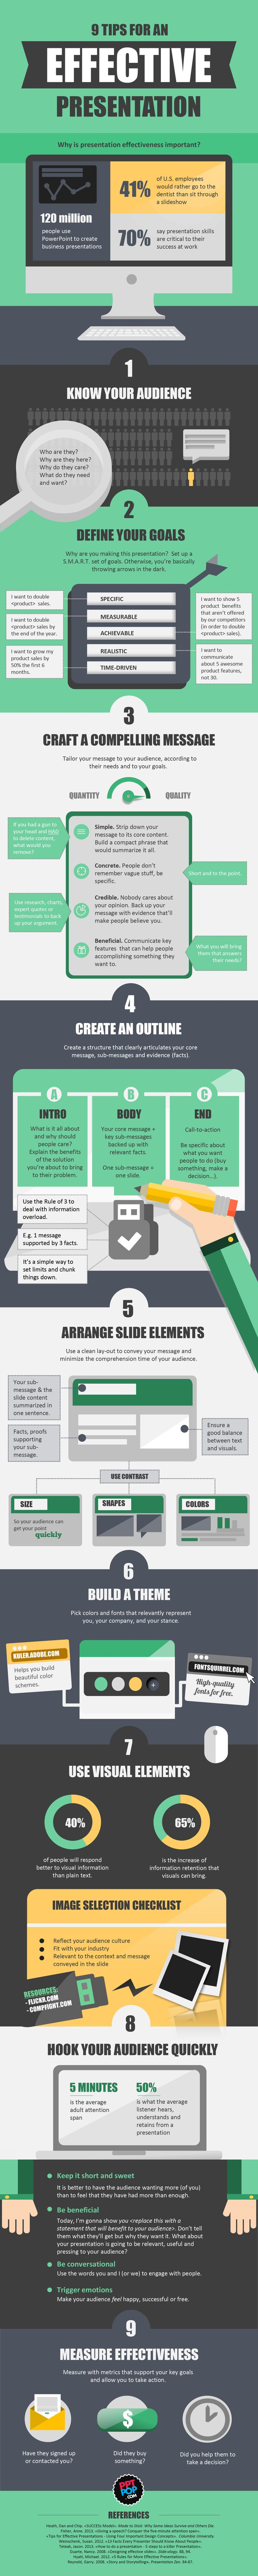 9 Tips for an Effective Presentation #infographic #Presentation #Sales #Career